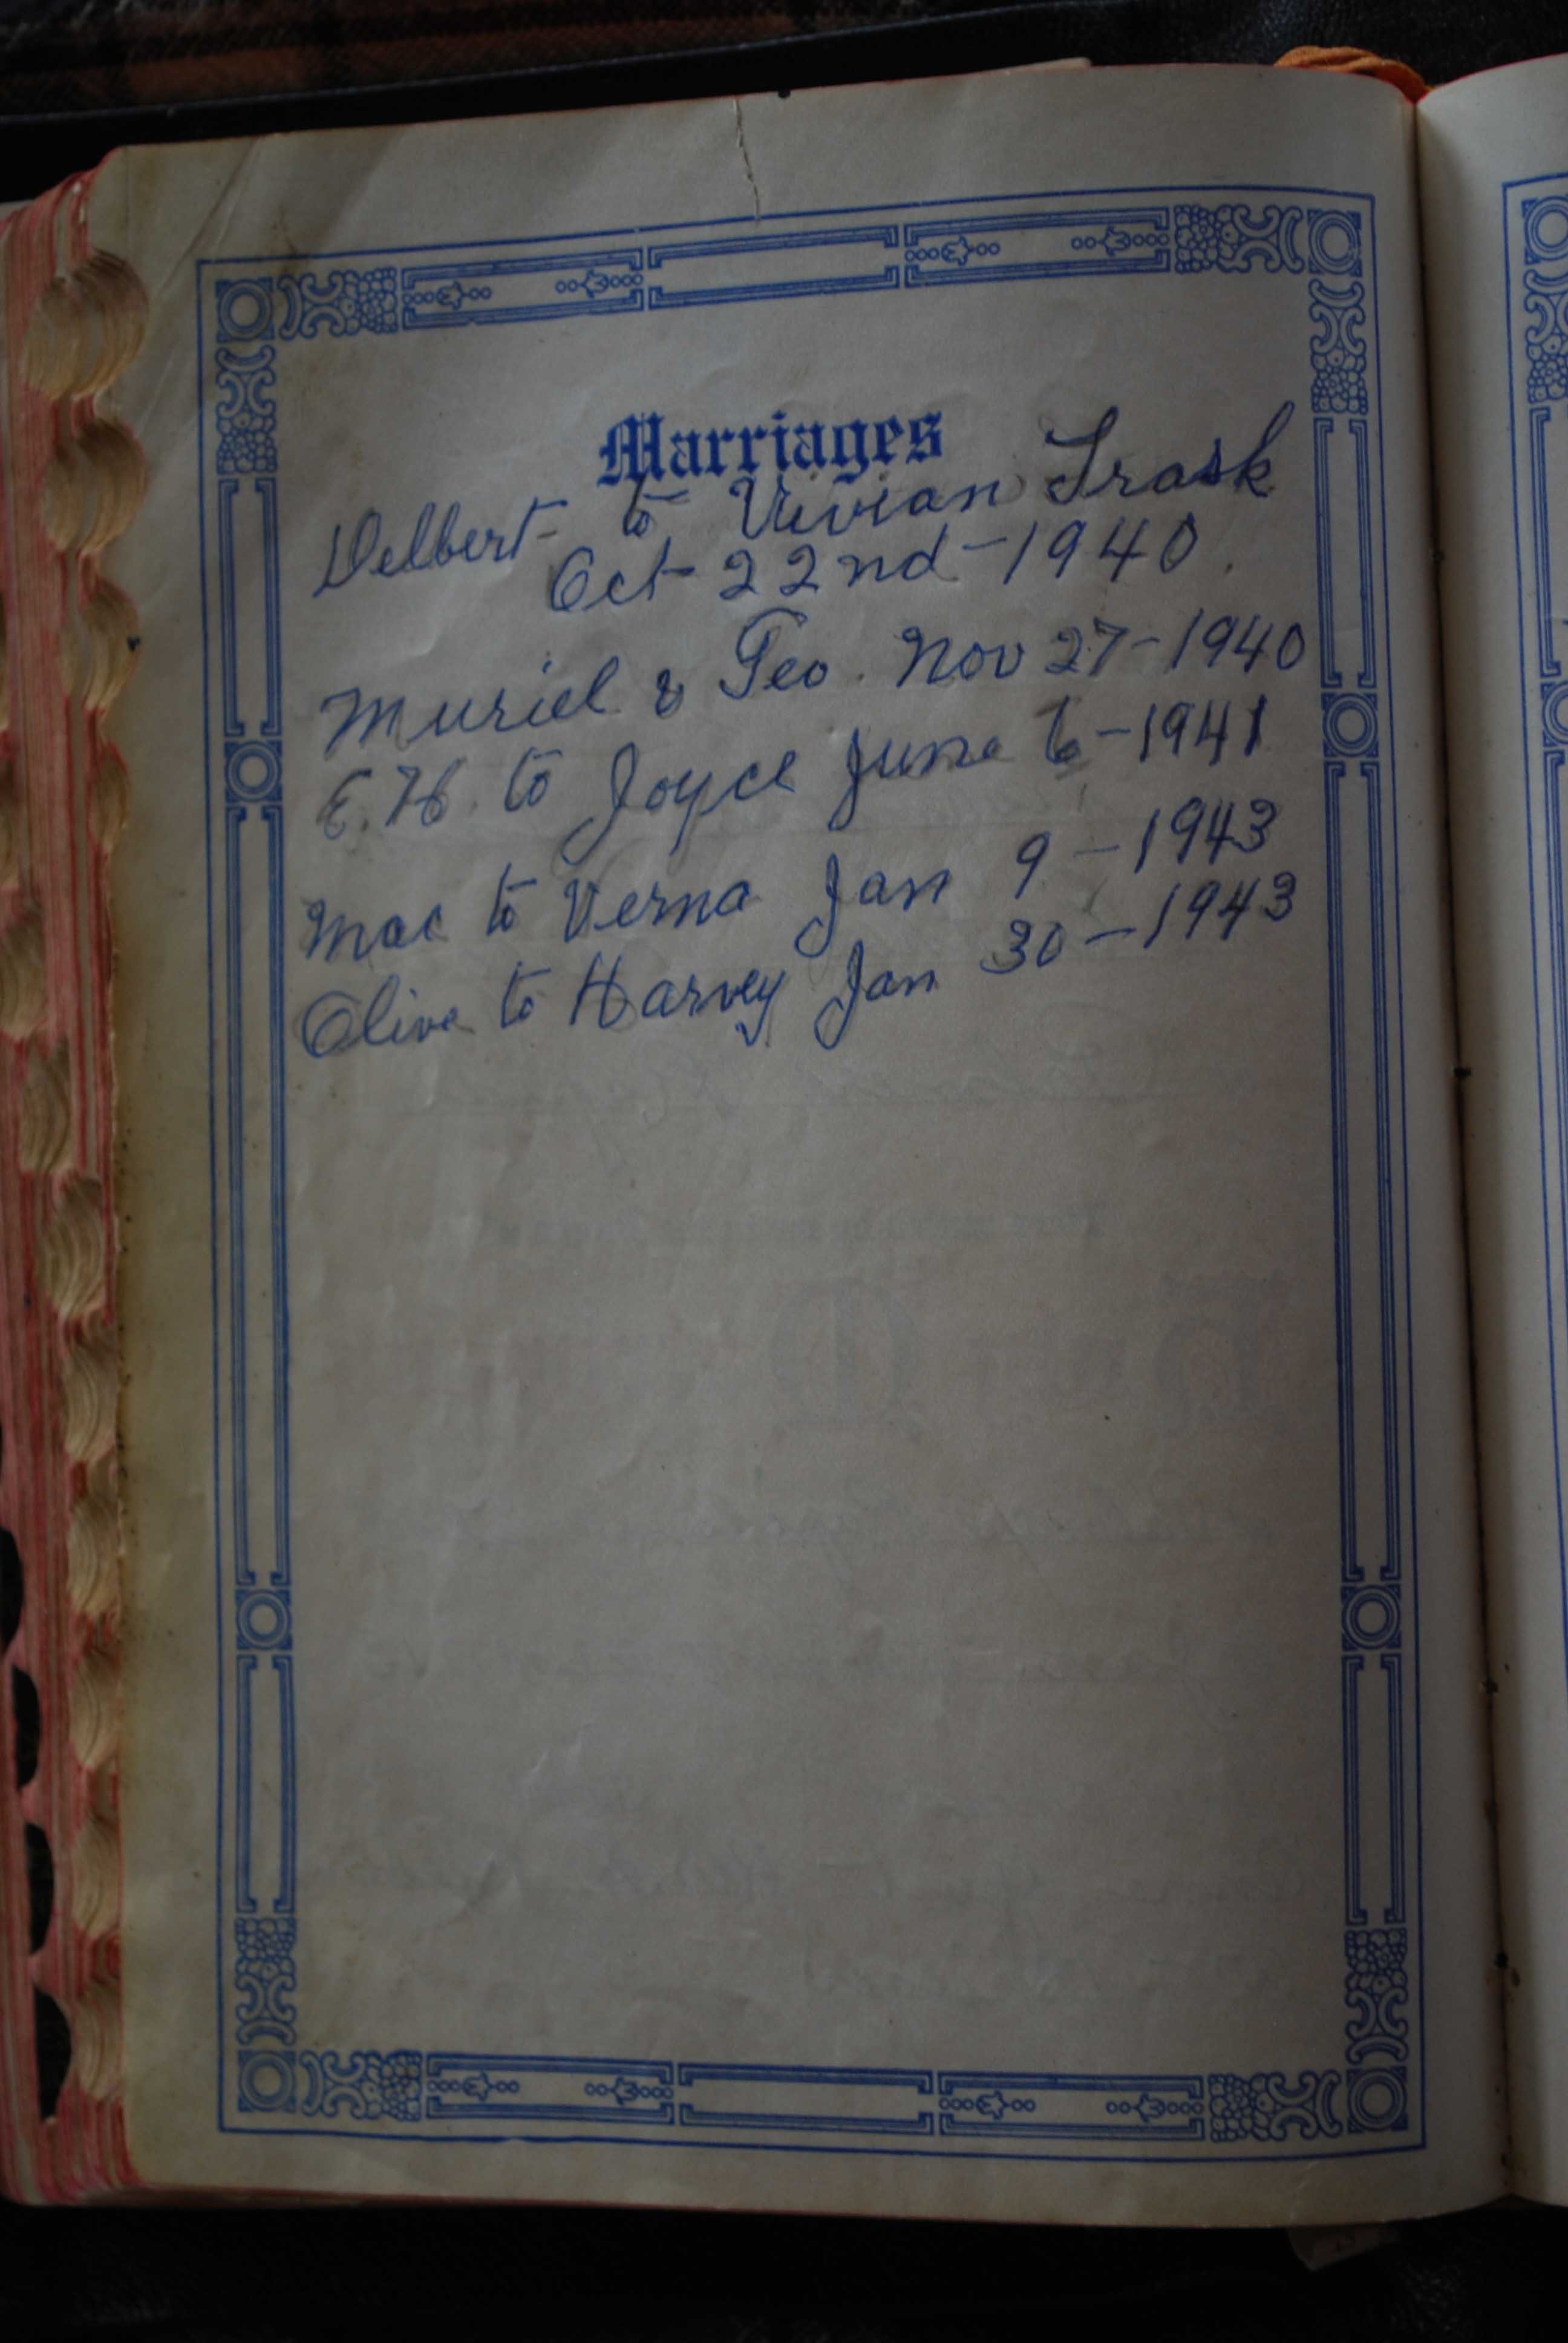 Image:DSC_0016_Fred_Summach's_Bible_-_Marriges.jpg